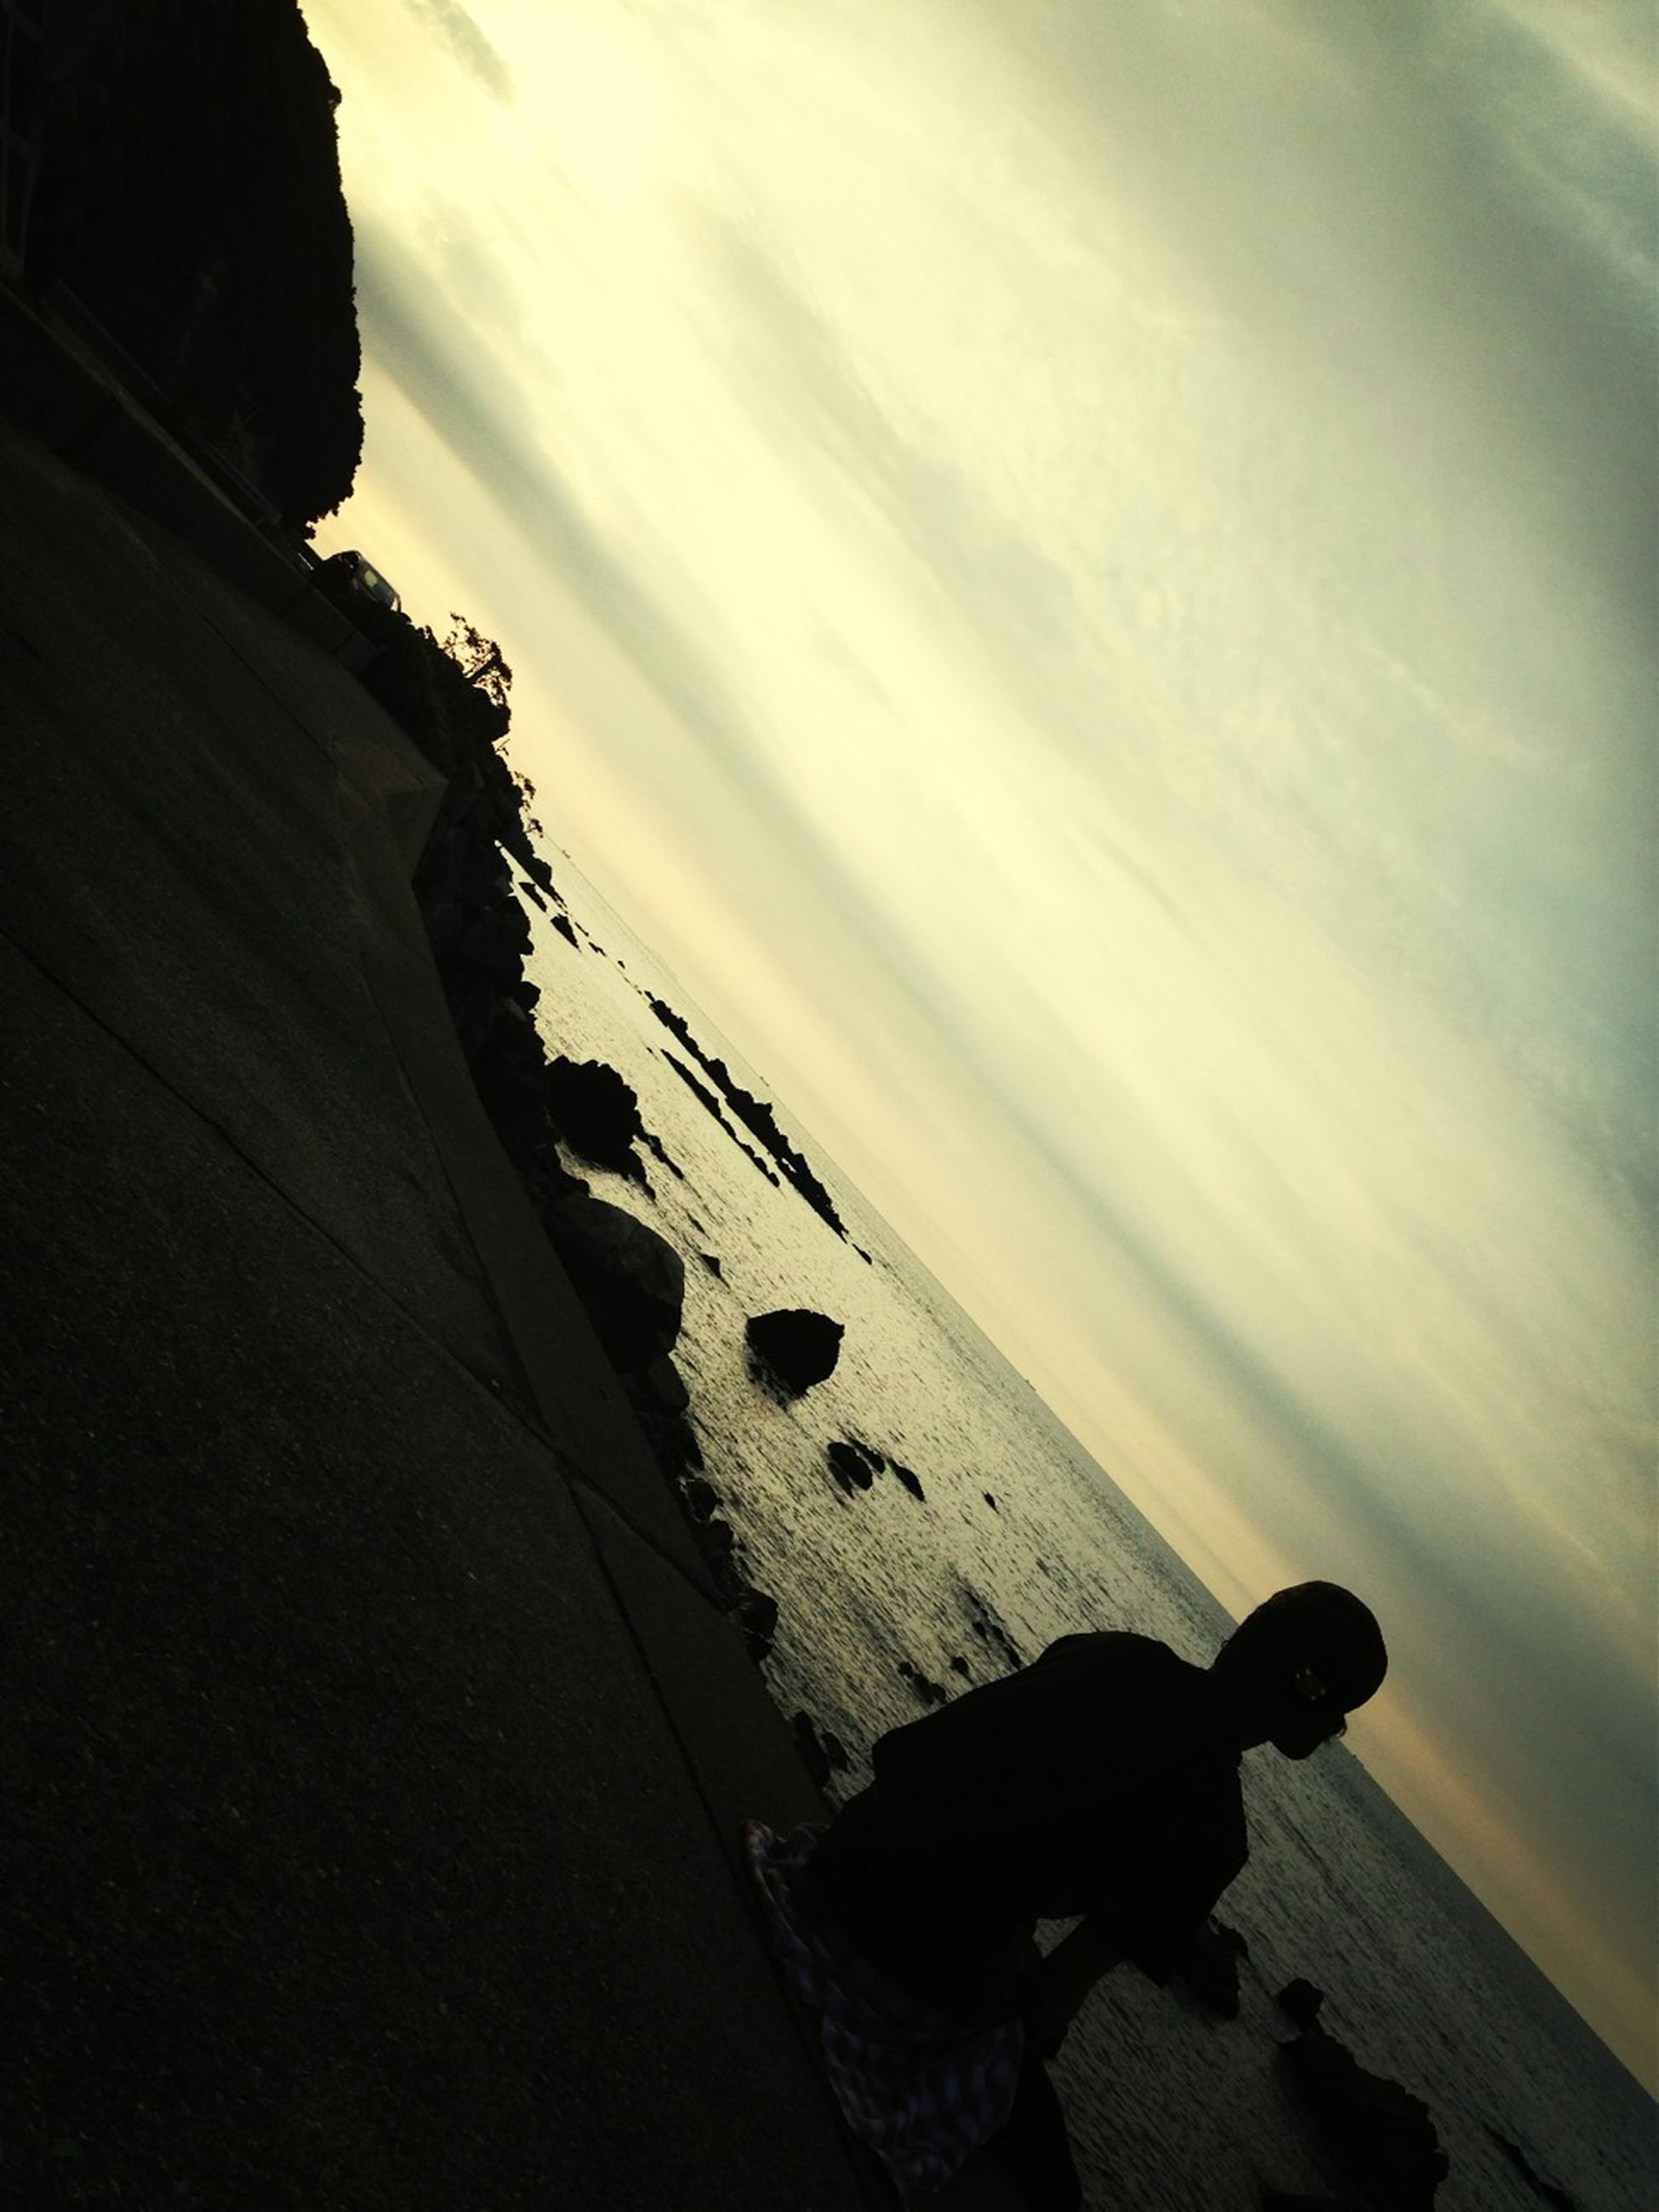 sea, sky, beach, silhouette, shore, horizon over water, lifestyles, water, men, cloud - sky, leisure activity, unrecognizable person, sand, nature, tranquility, scenics, outdoors, beauty in nature